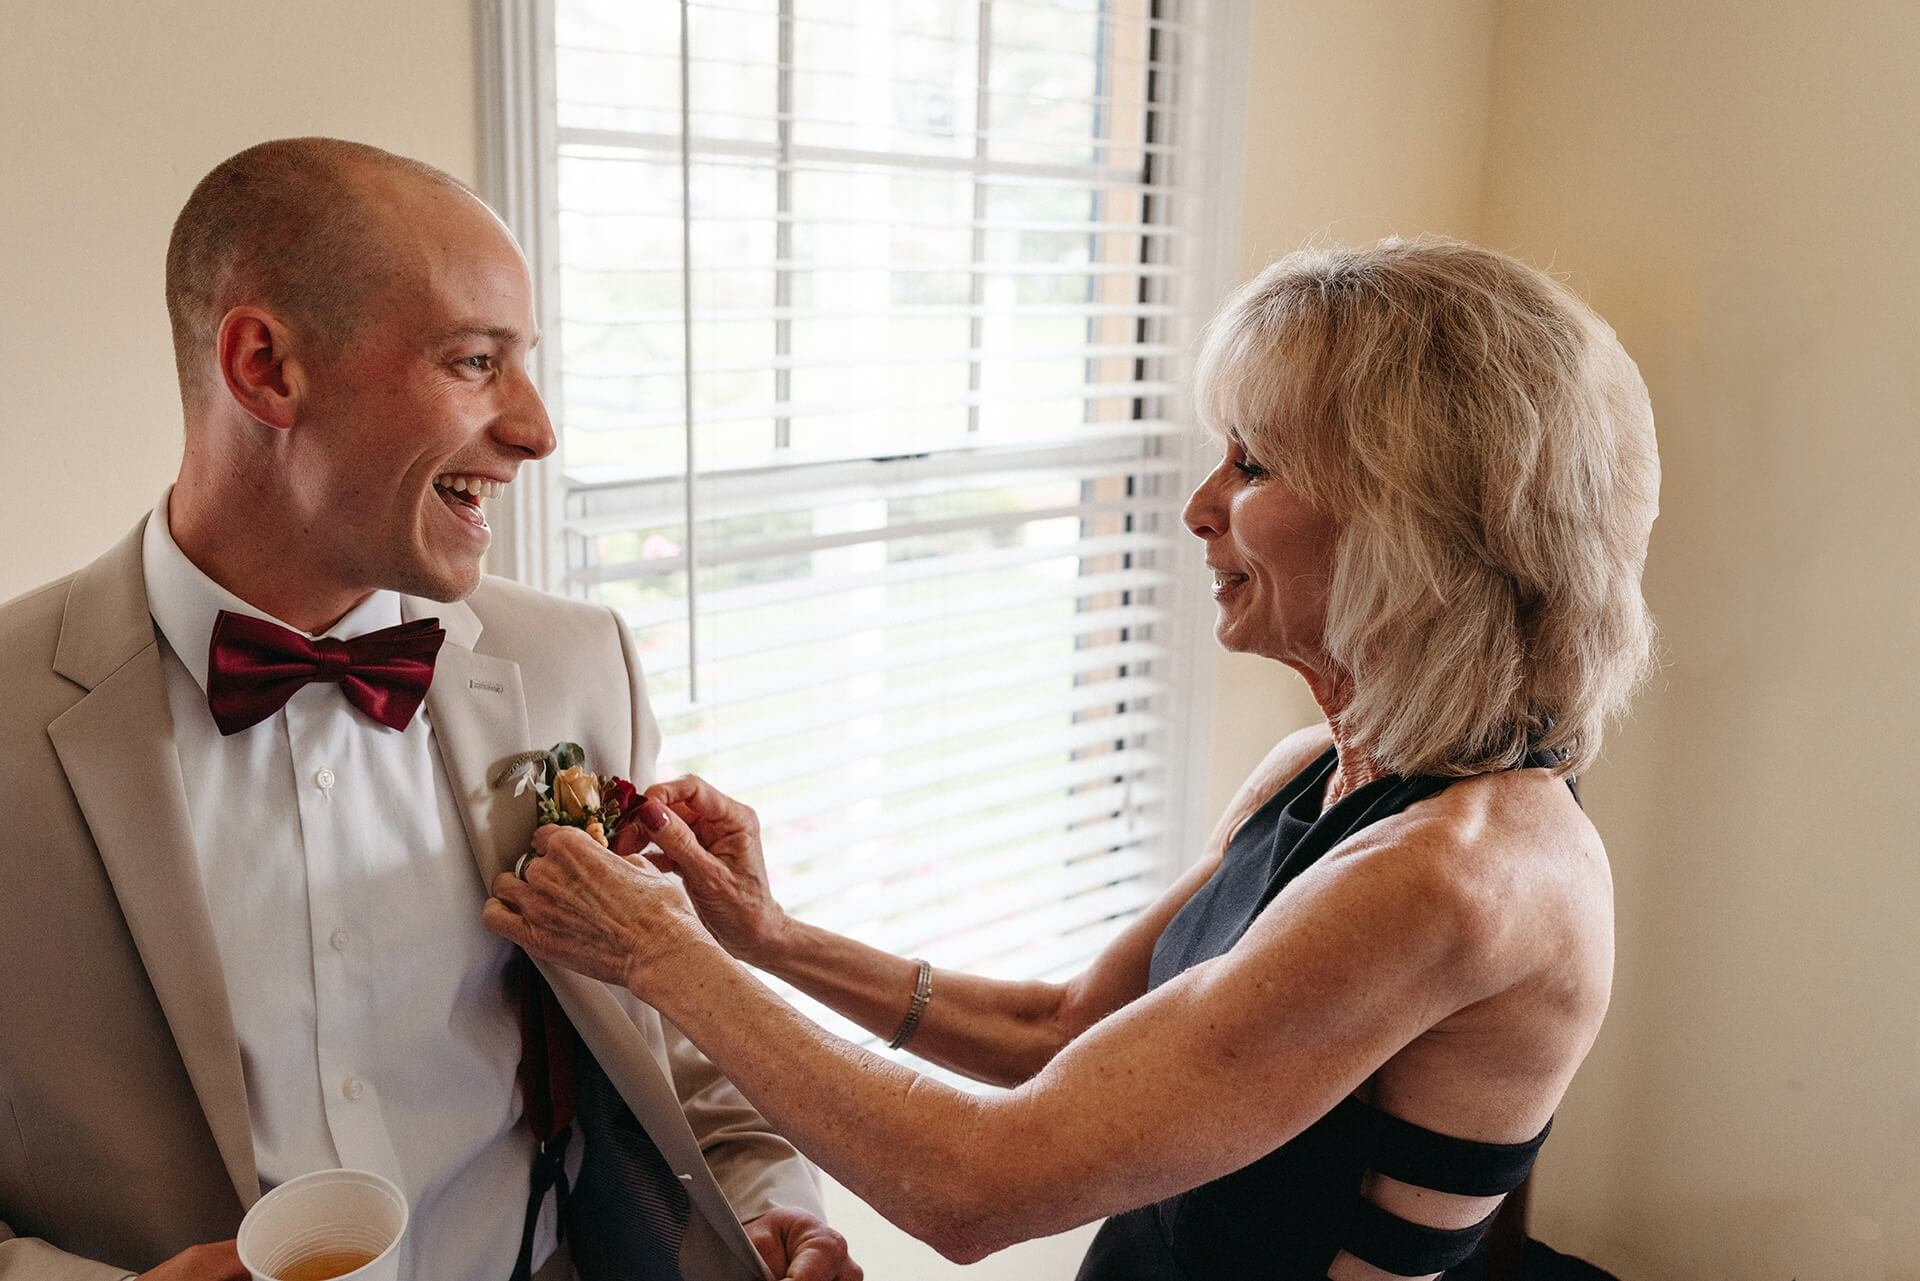 Northern California wedding photography   The grooms mother fixes his boutonniere